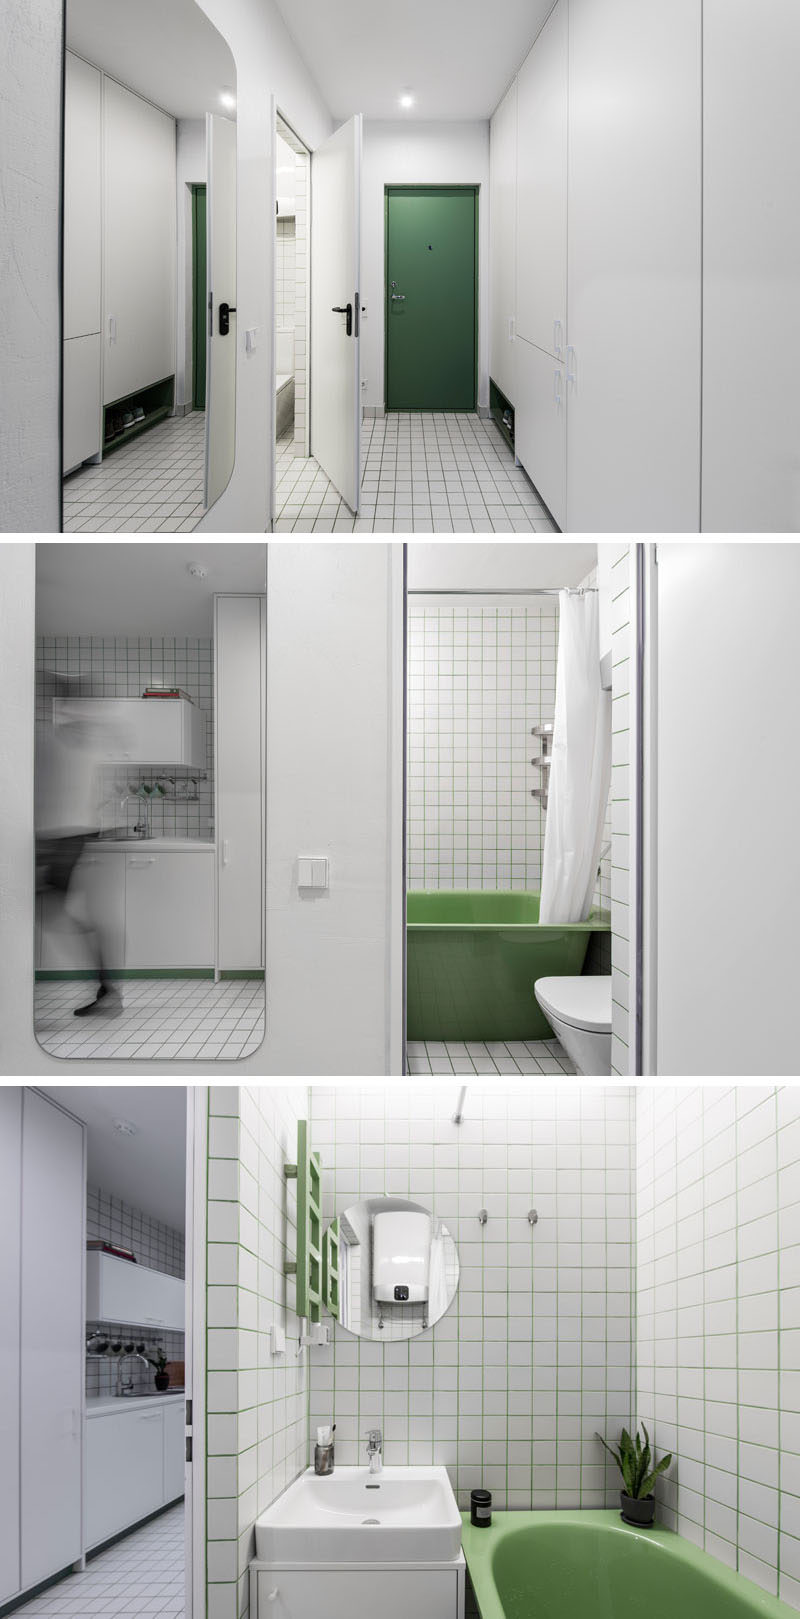 This modern and white micro apartment used green as an accent color, which has been used for front door, the shoe storage, the bathtub, and the tile grout. #GreenAccents #Bathroom SmallBathroom #GreenGrout